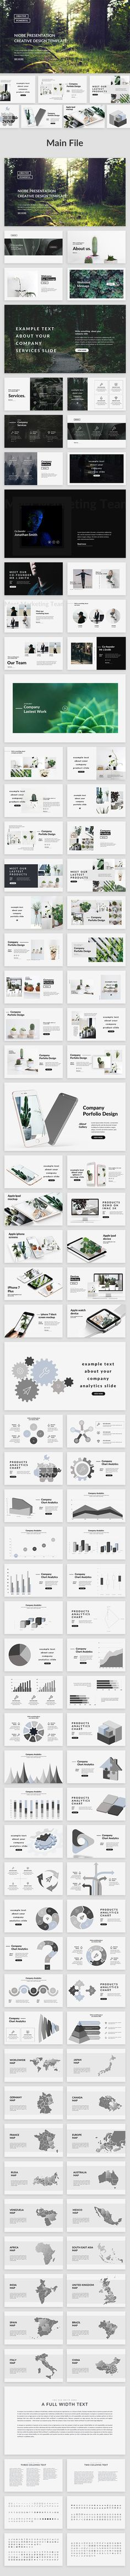 Niobe - Creative Keynote Template